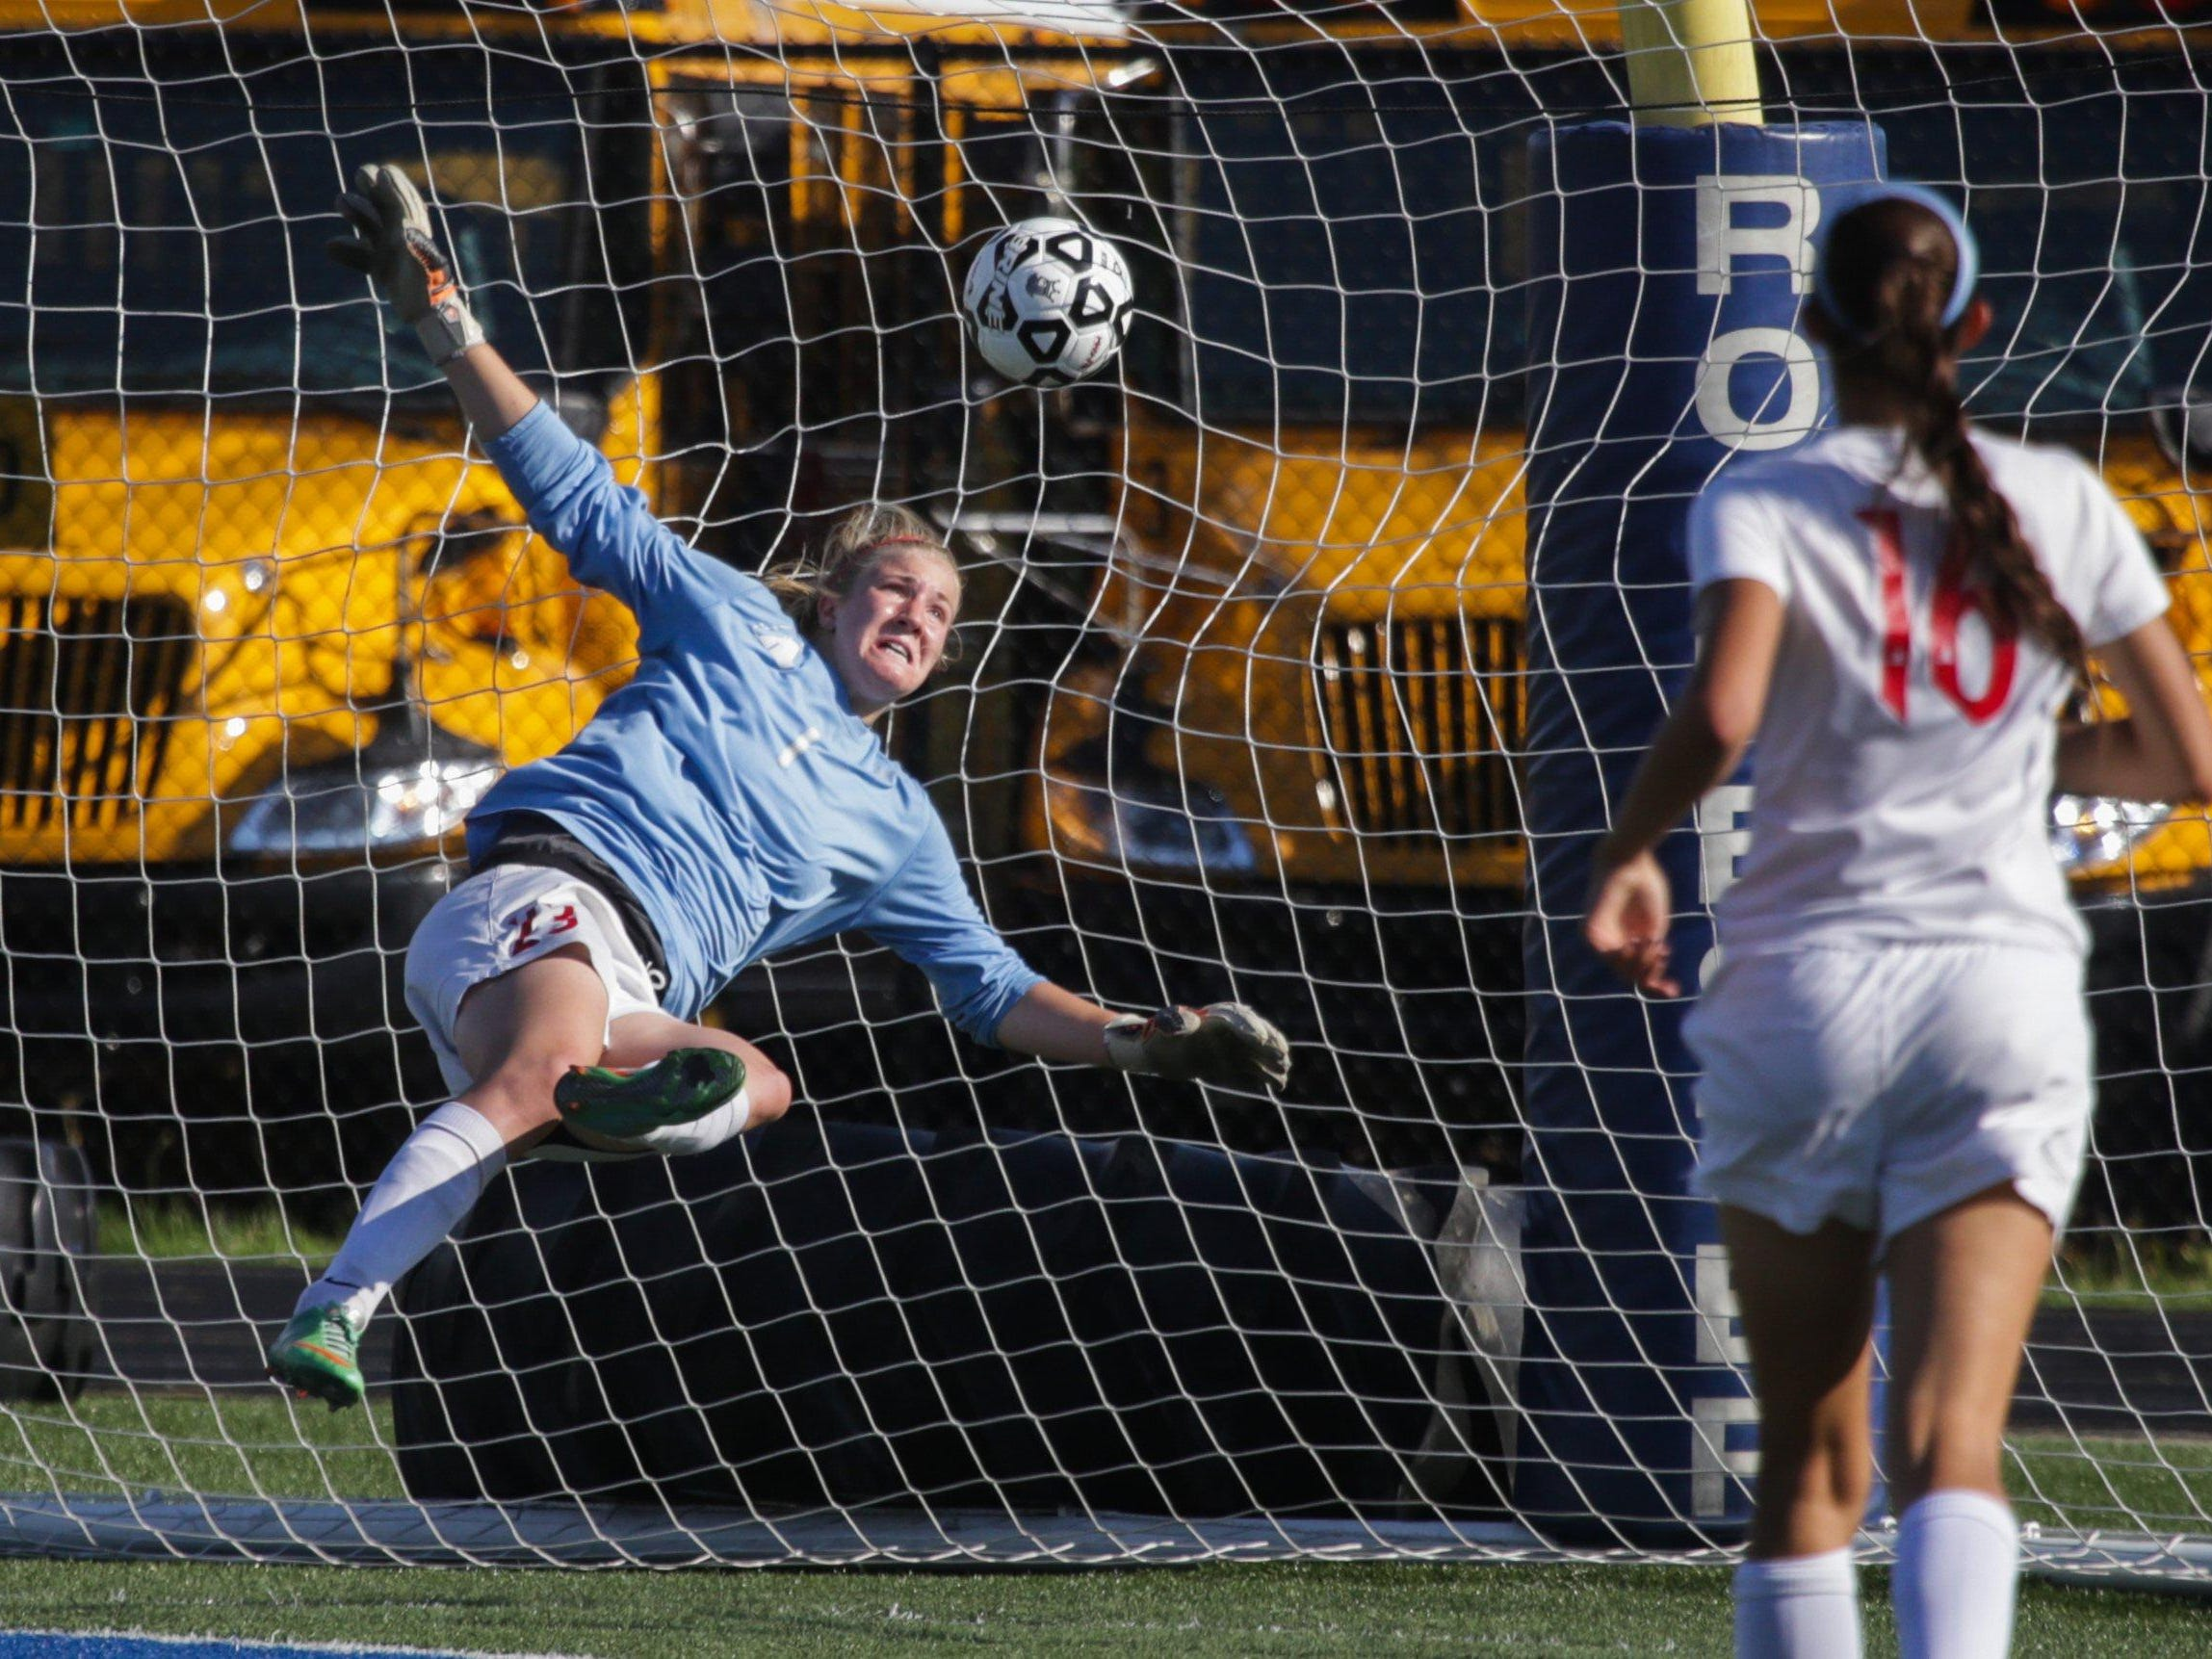 Troy Athens goalie Amanda Harris is unable to save this shot from Grand Blanc's Morgen Metzger during their Division 1 semifinal Wednesday.